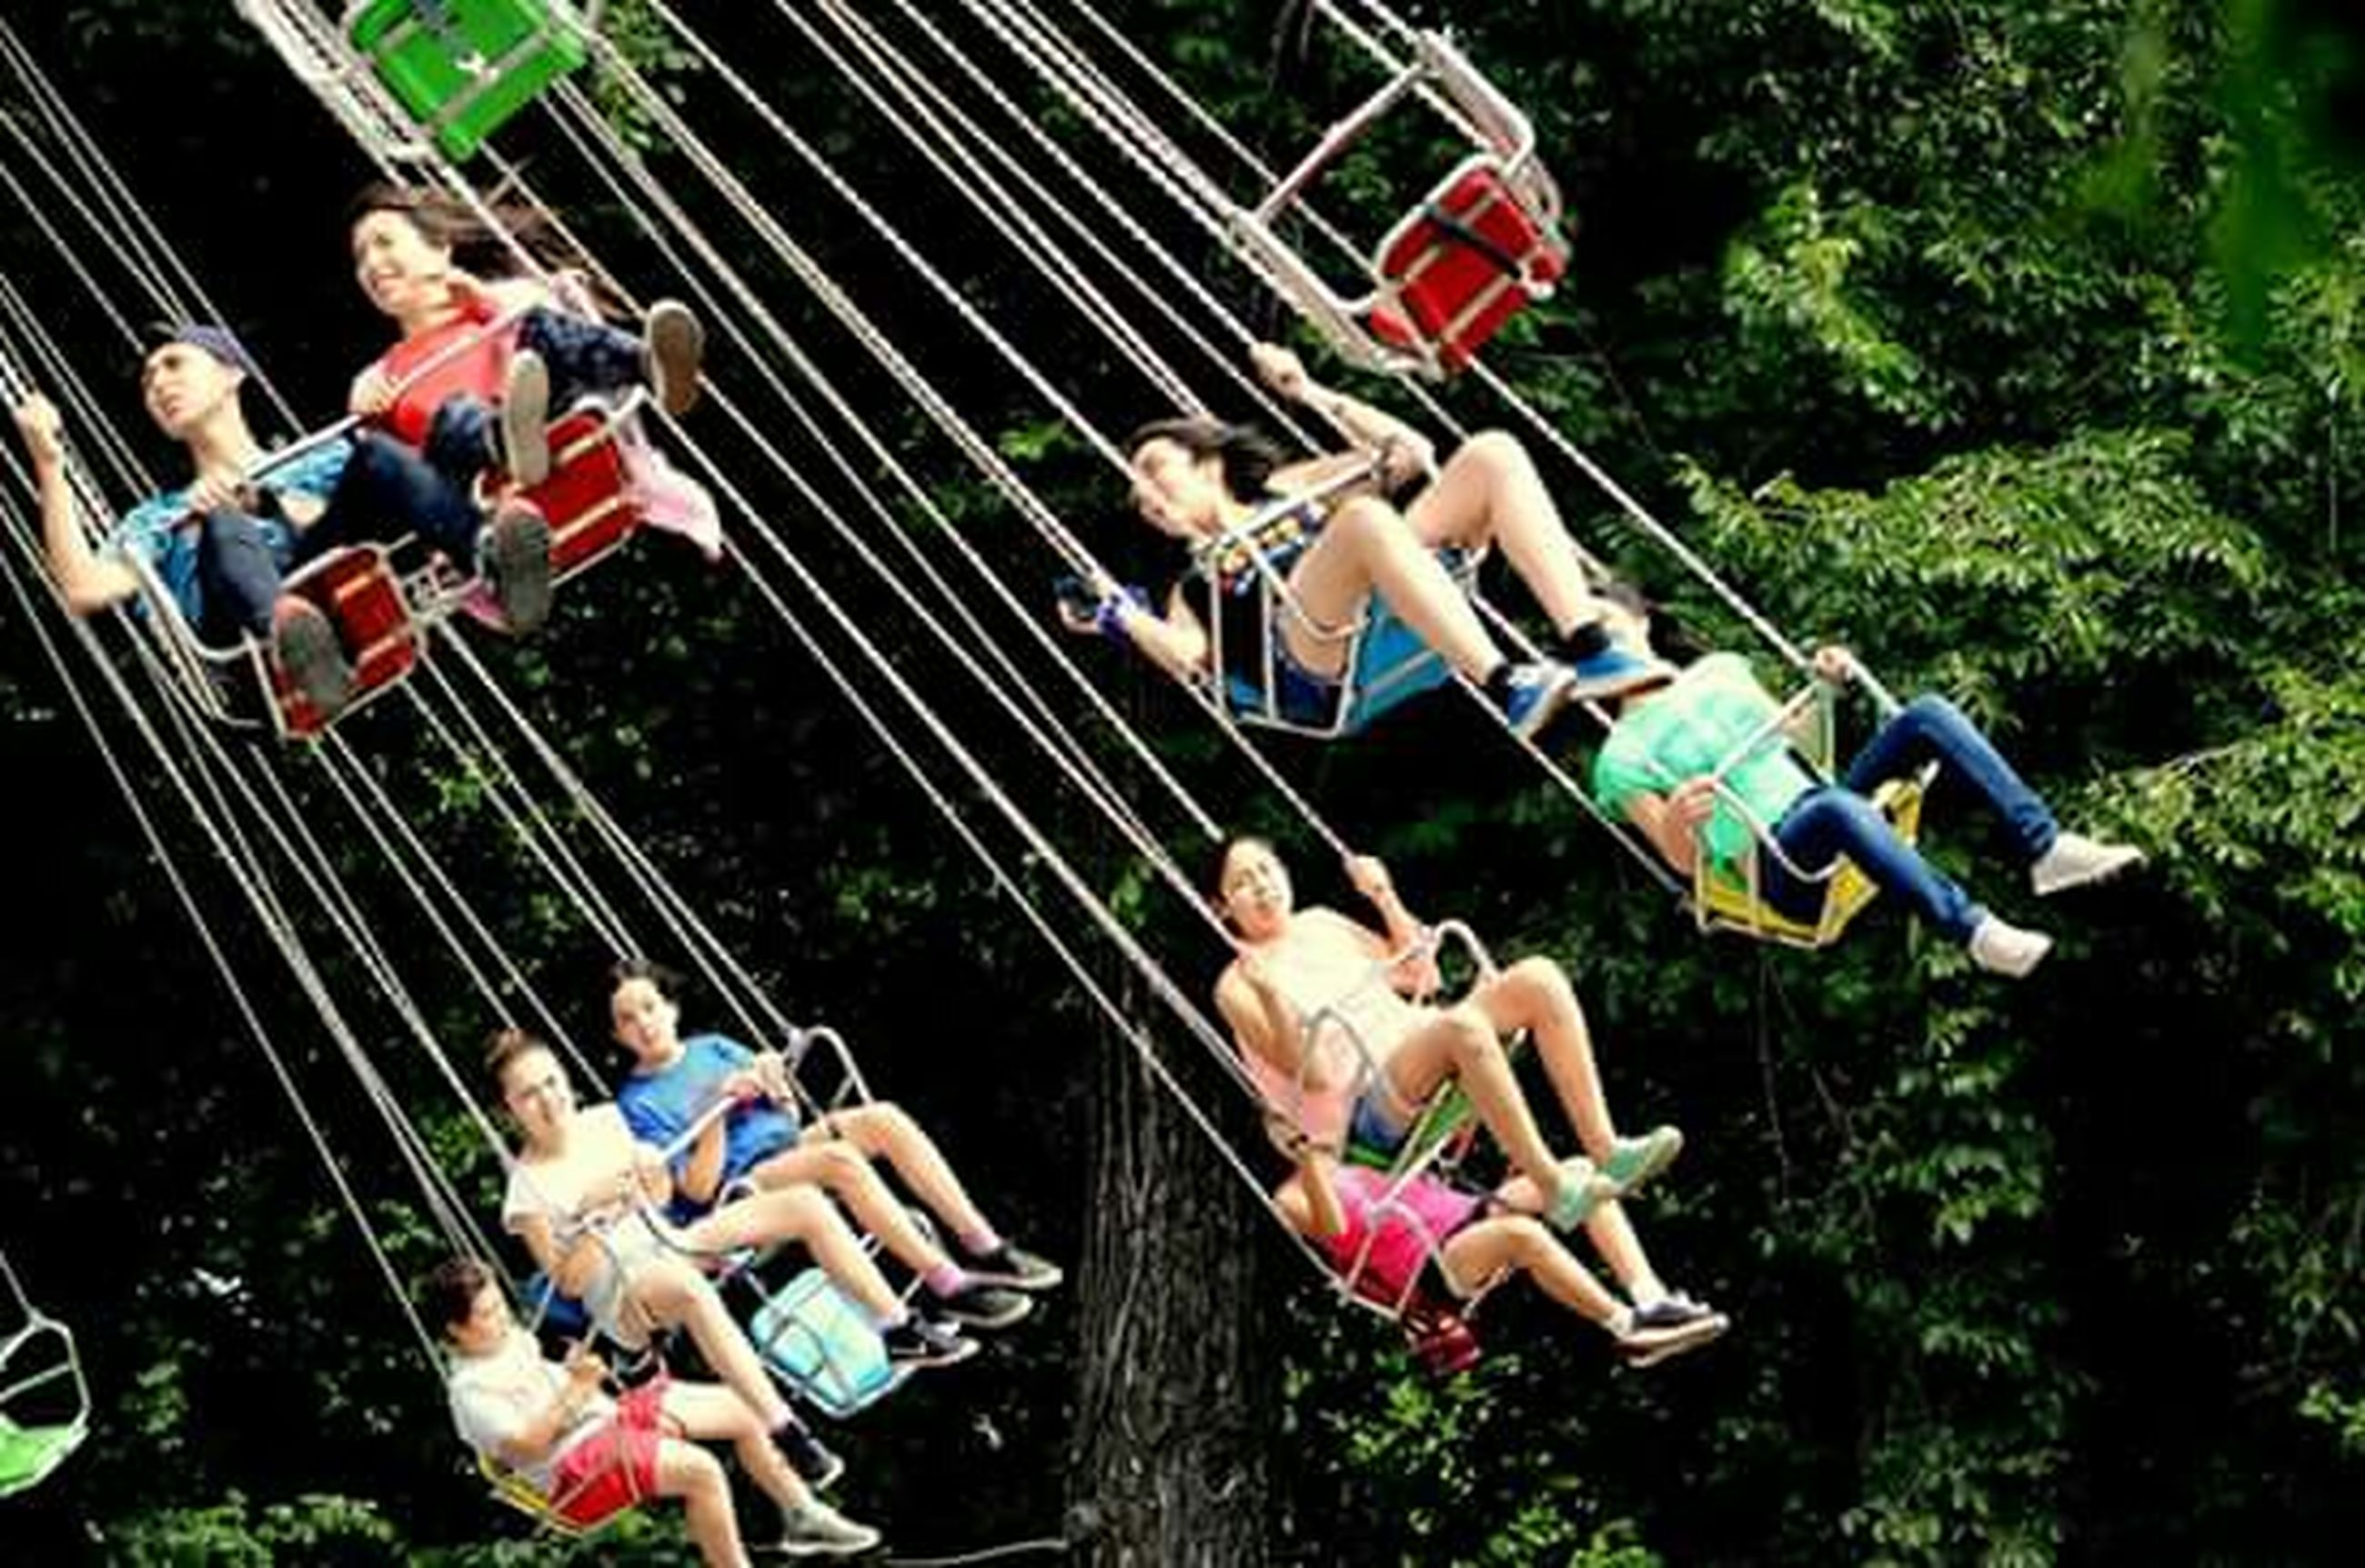 men, lifestyles, leisure activity, person, large group of people, high angle view, casual clothing, working, togetherness, tree, full length, medium group of people, occupation, day, transportation, sitting, outdoors, enjoyment